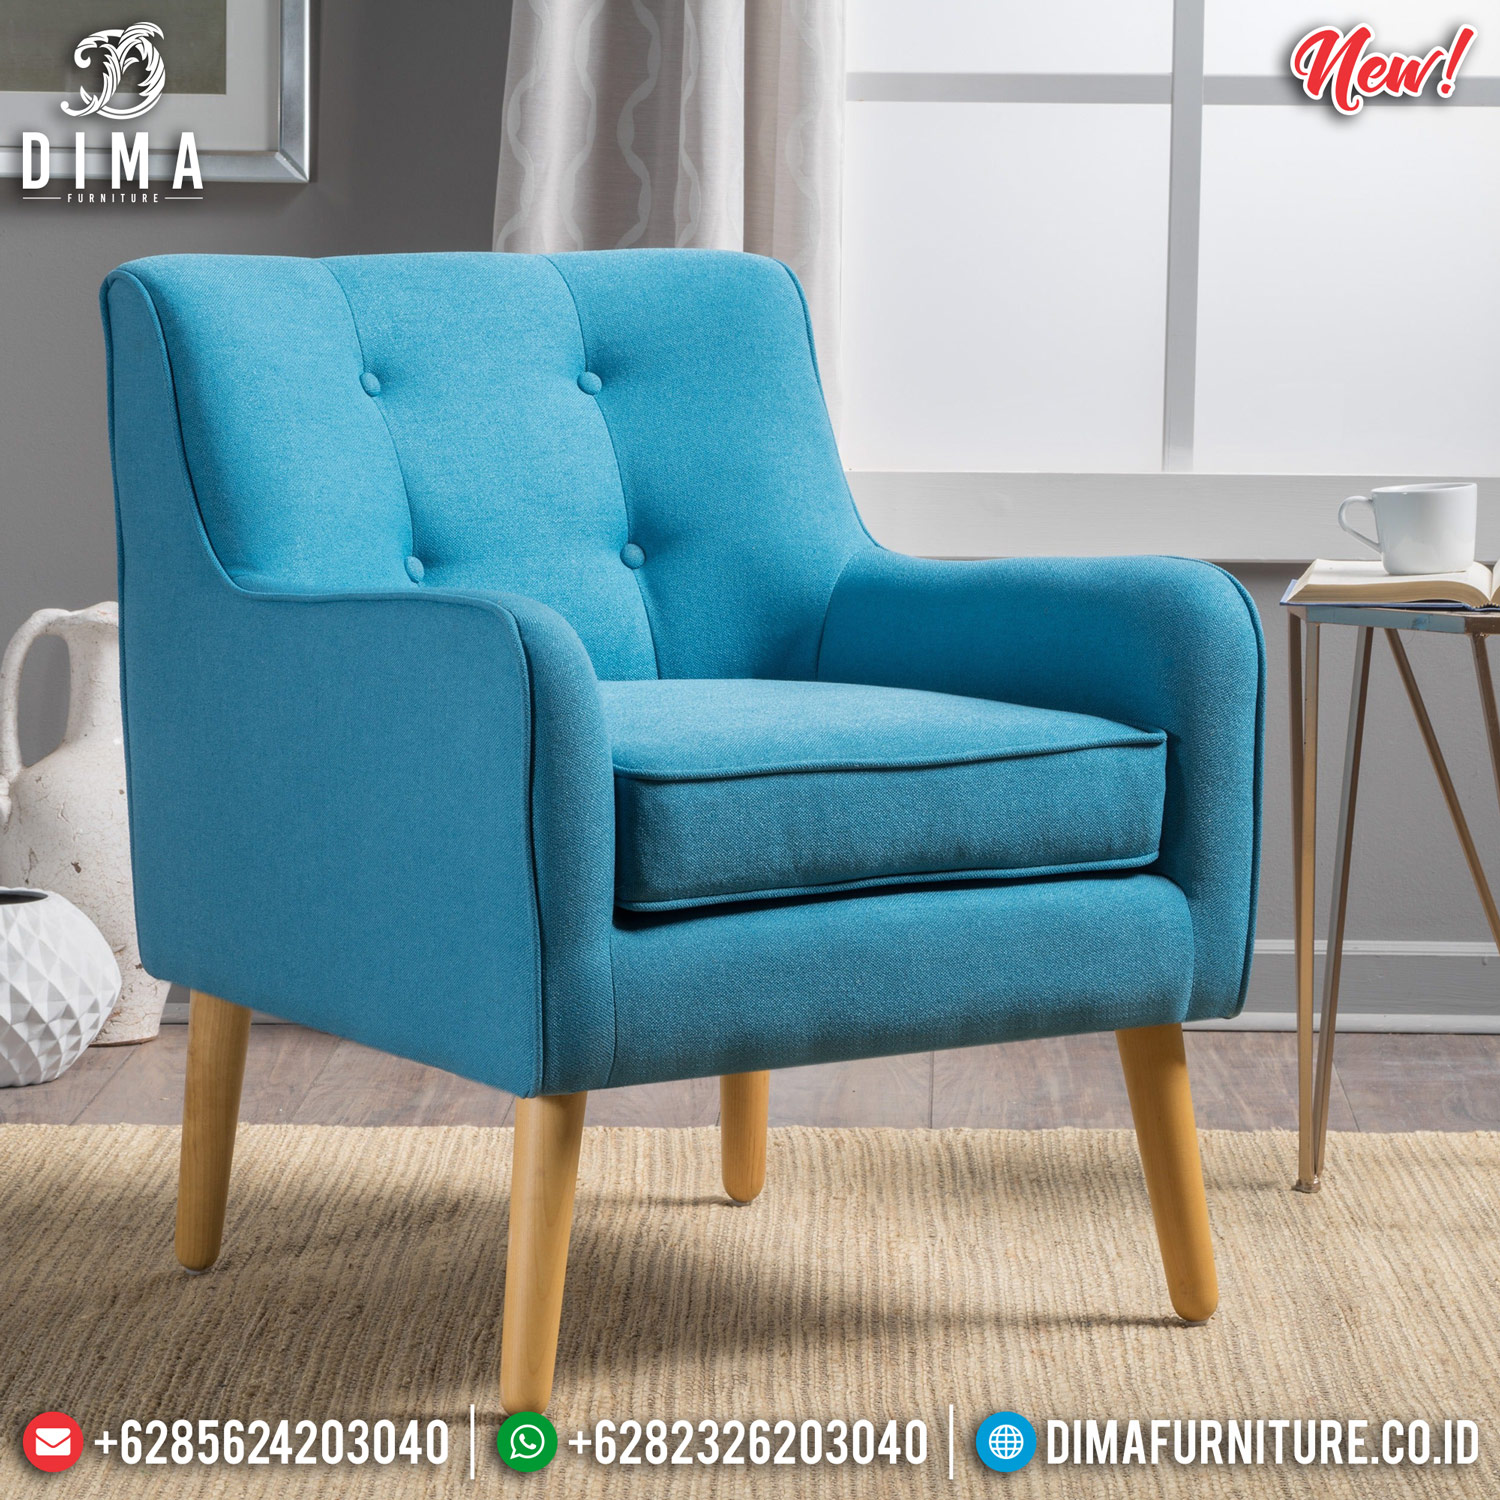 Sofa Minimalis Jati Natural Retro Classic Beautiful Design Mebel Jepara TTJ-0900